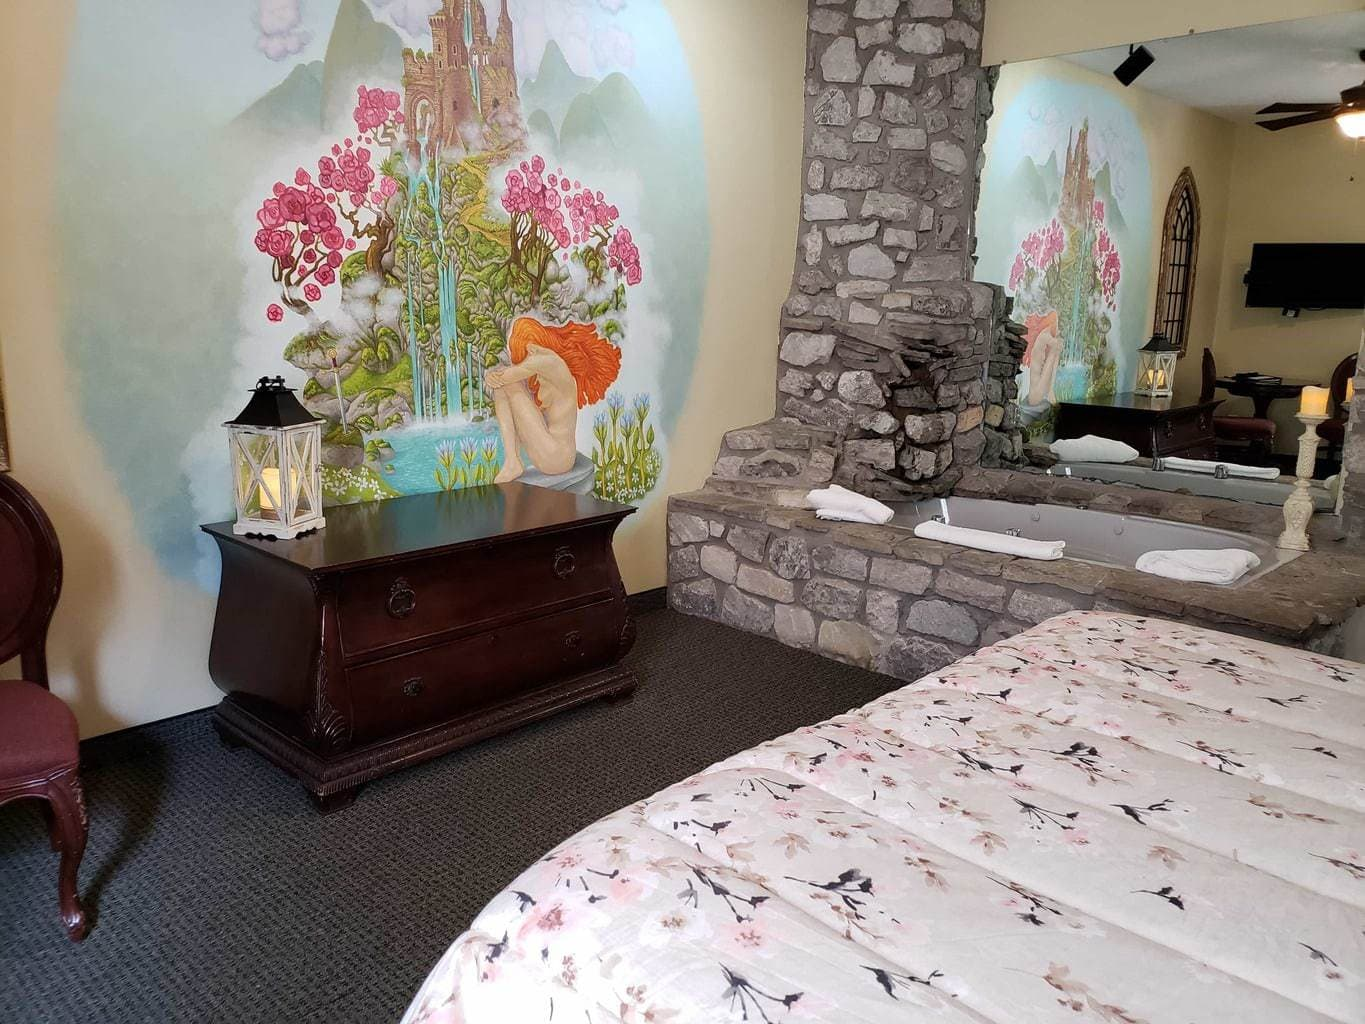 camelot hotel themed room